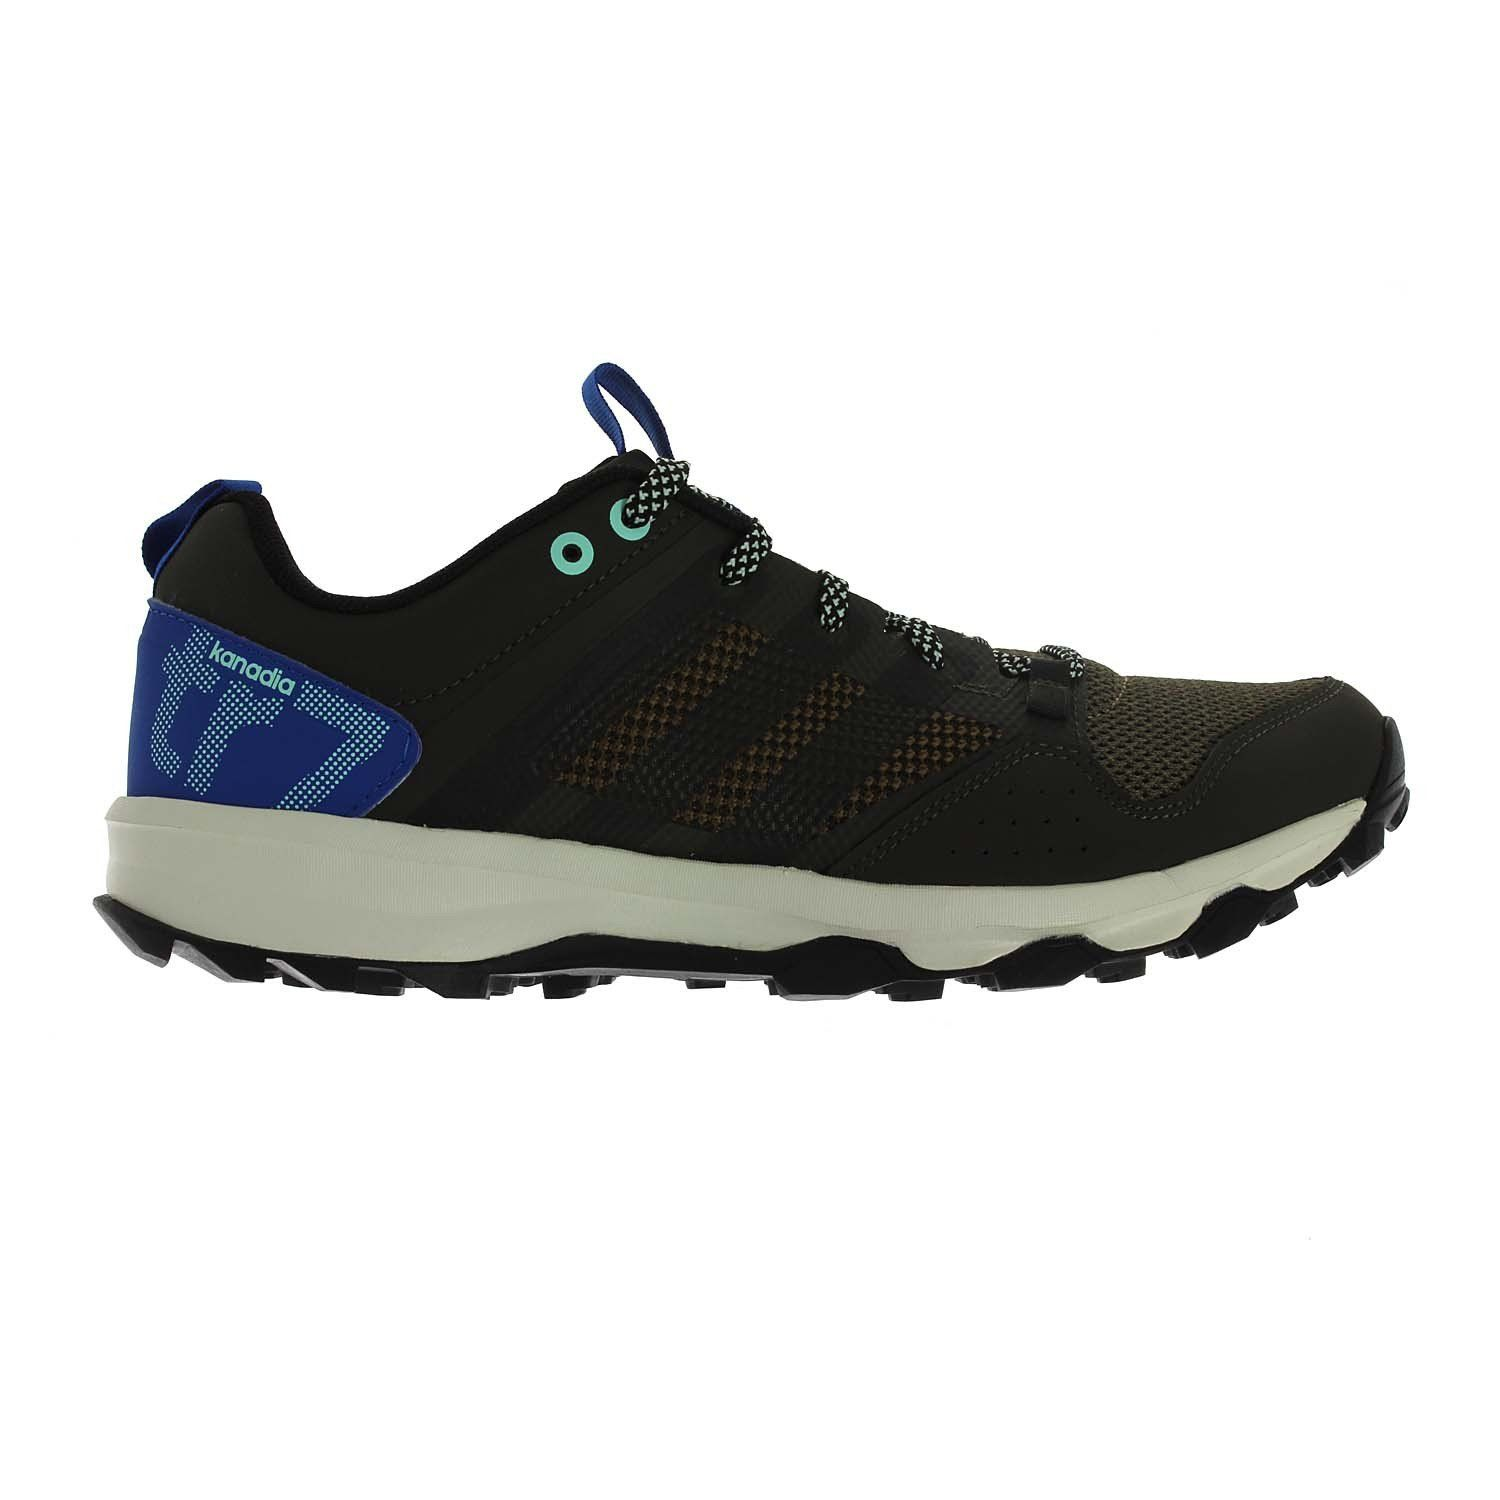 Adidas Kanadia 7 trail shoes with superior traction. It Yyelds agile  Off-Road performance in the most comfortable and lightest Kanadia ever  breathable mesh ...